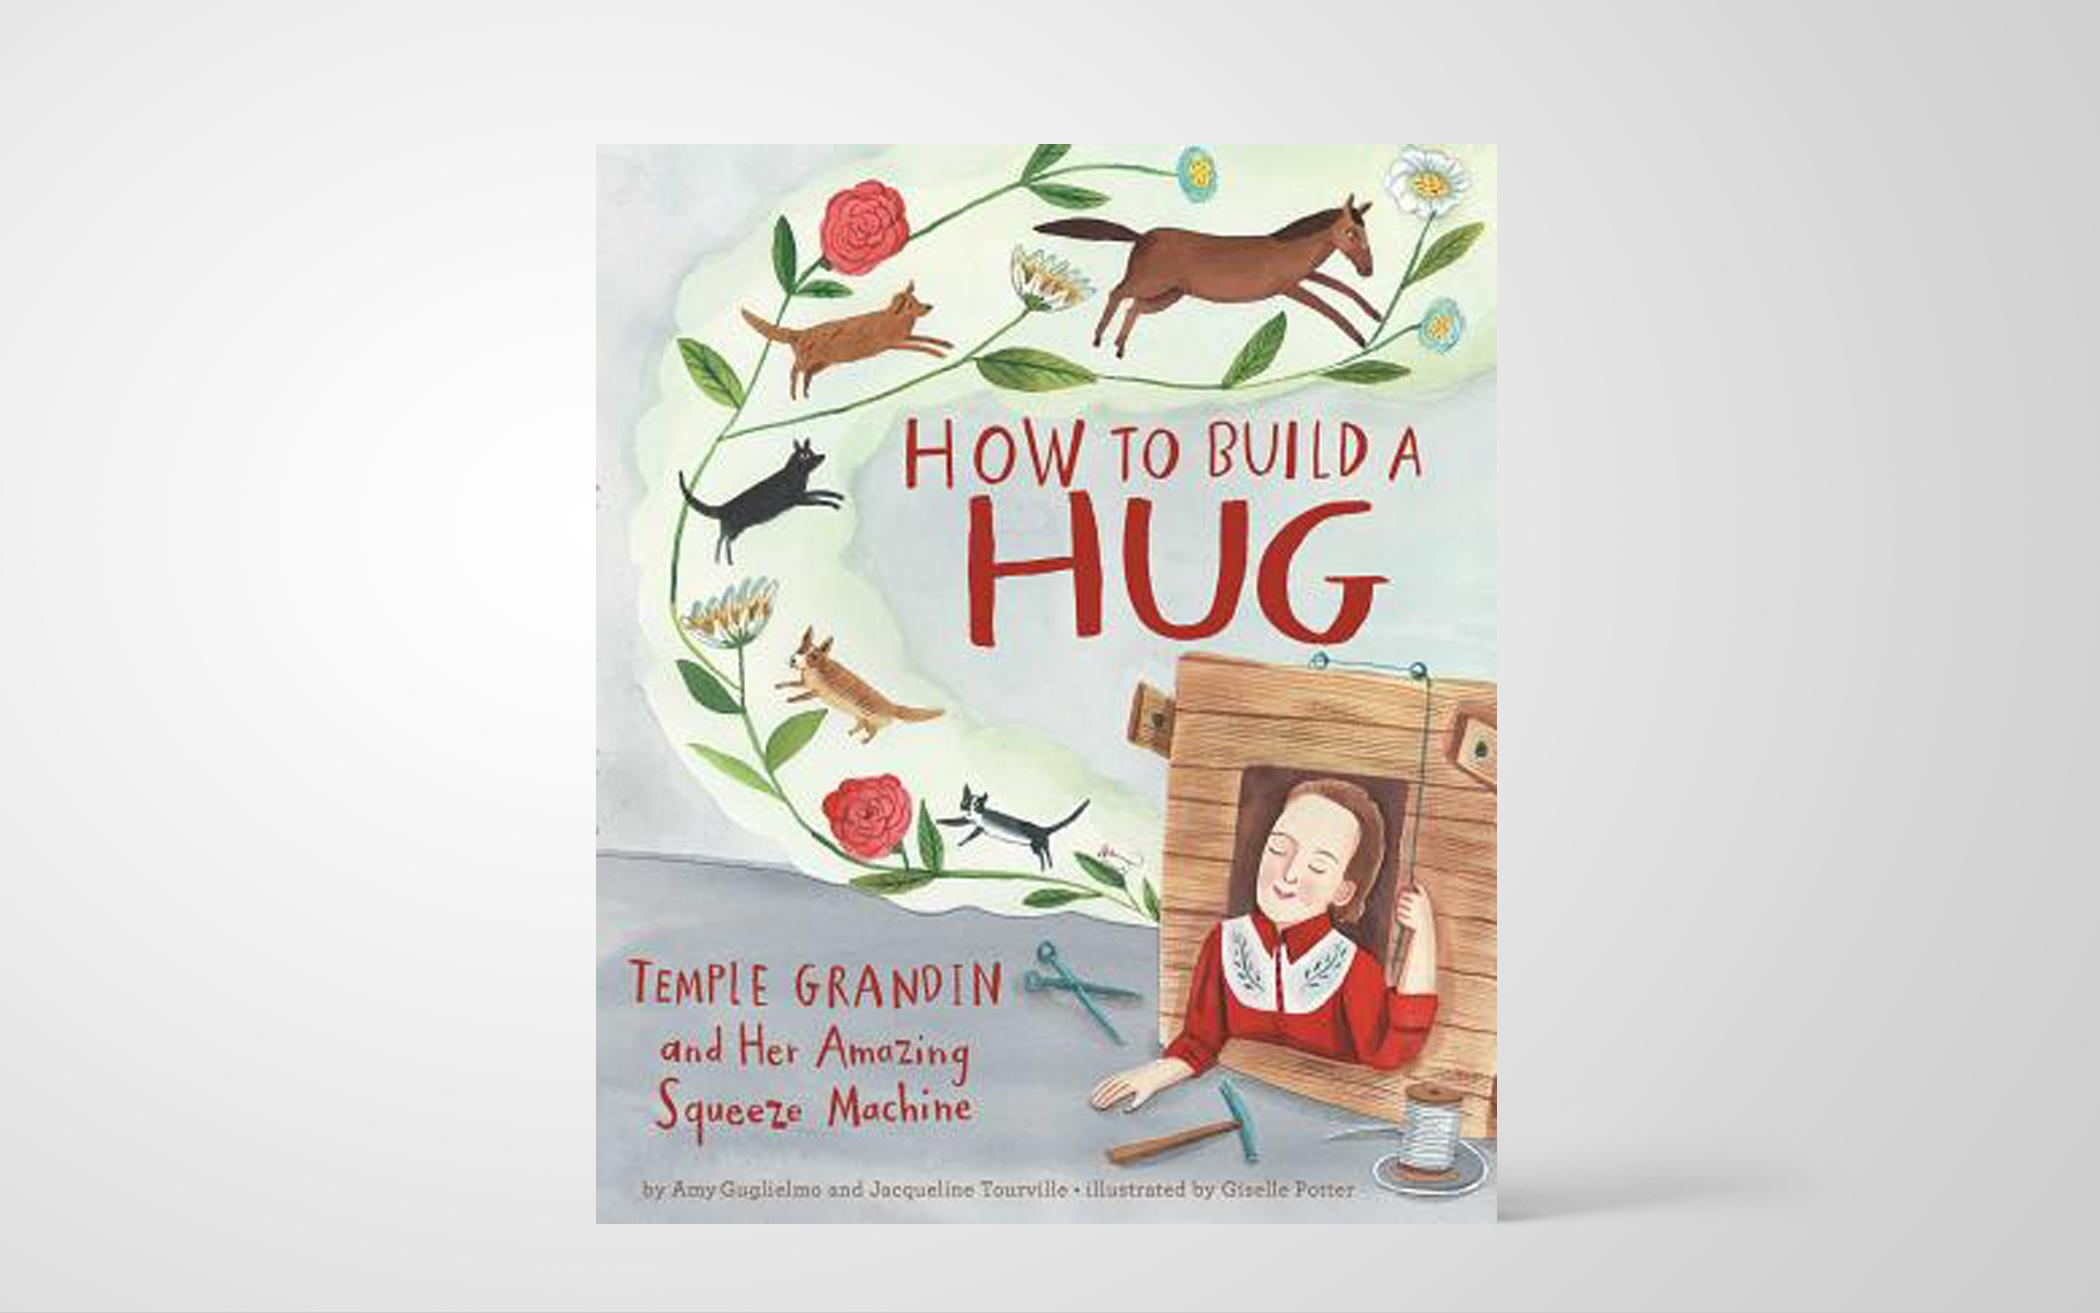 How to Build a Hug: Temple Grandin and Her Amazing Squeeze Machine